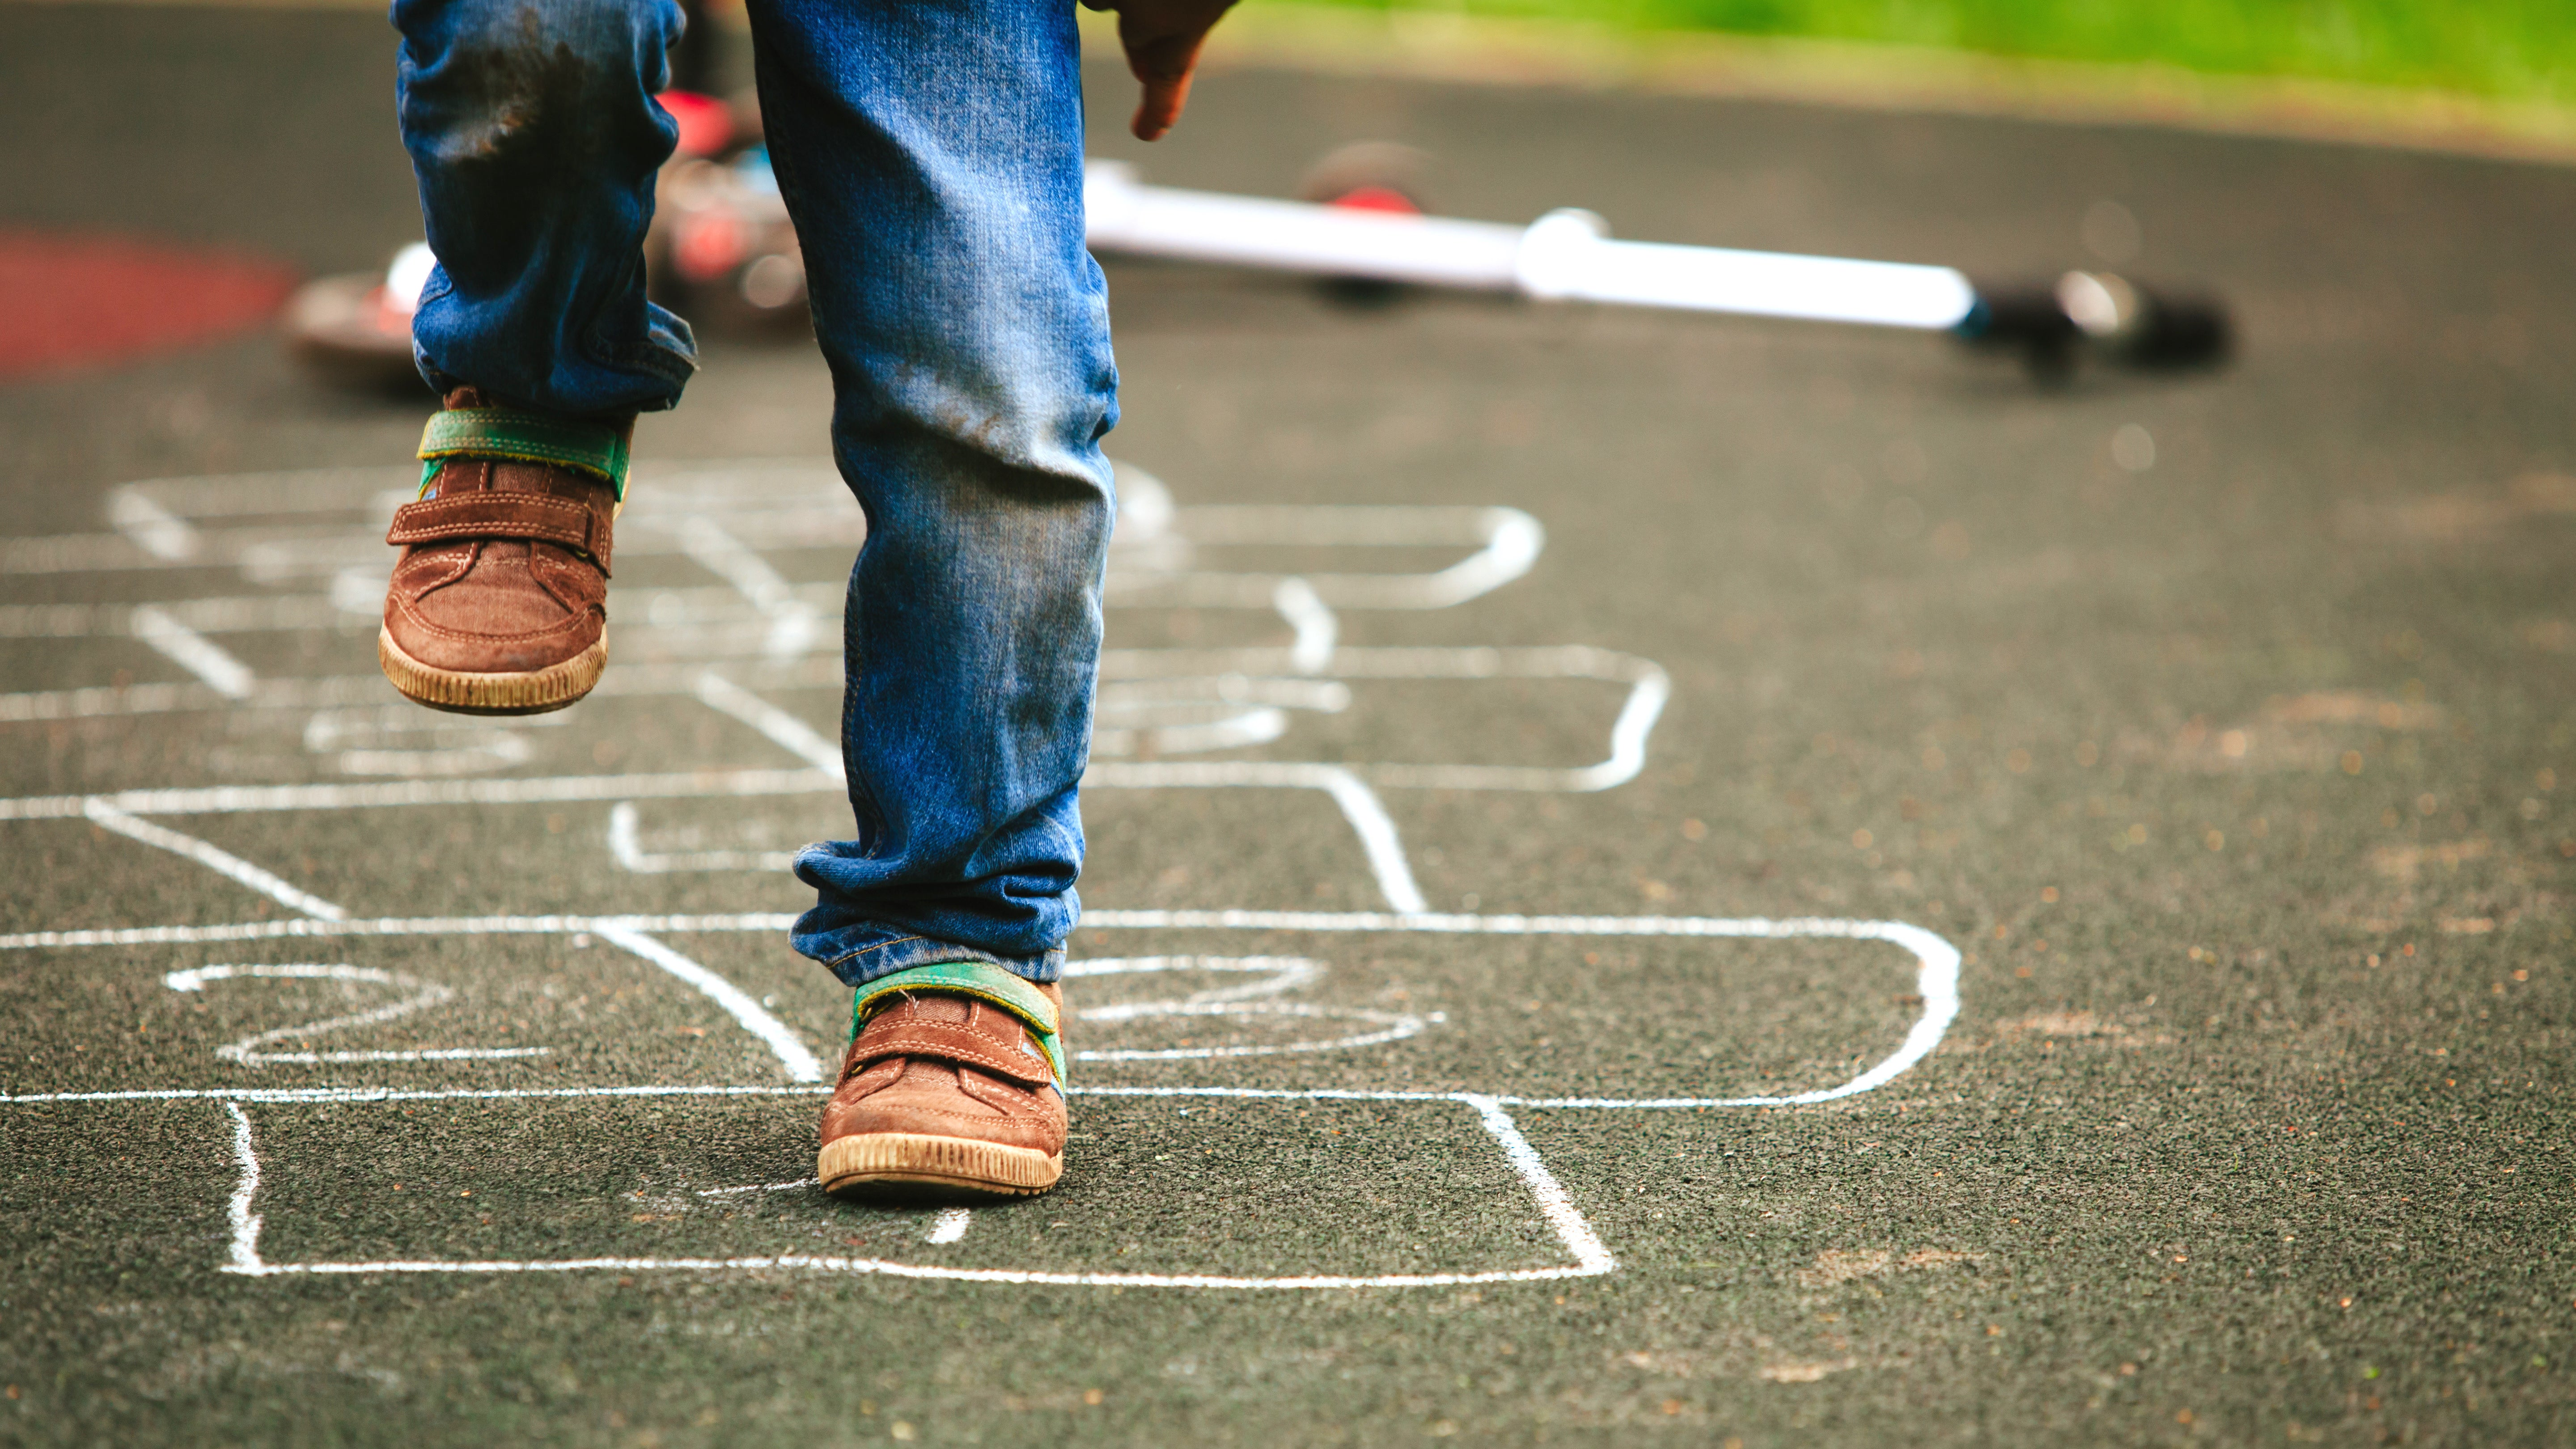 Make An Indoor Hopscotch Game Out Of Bubble Wrap